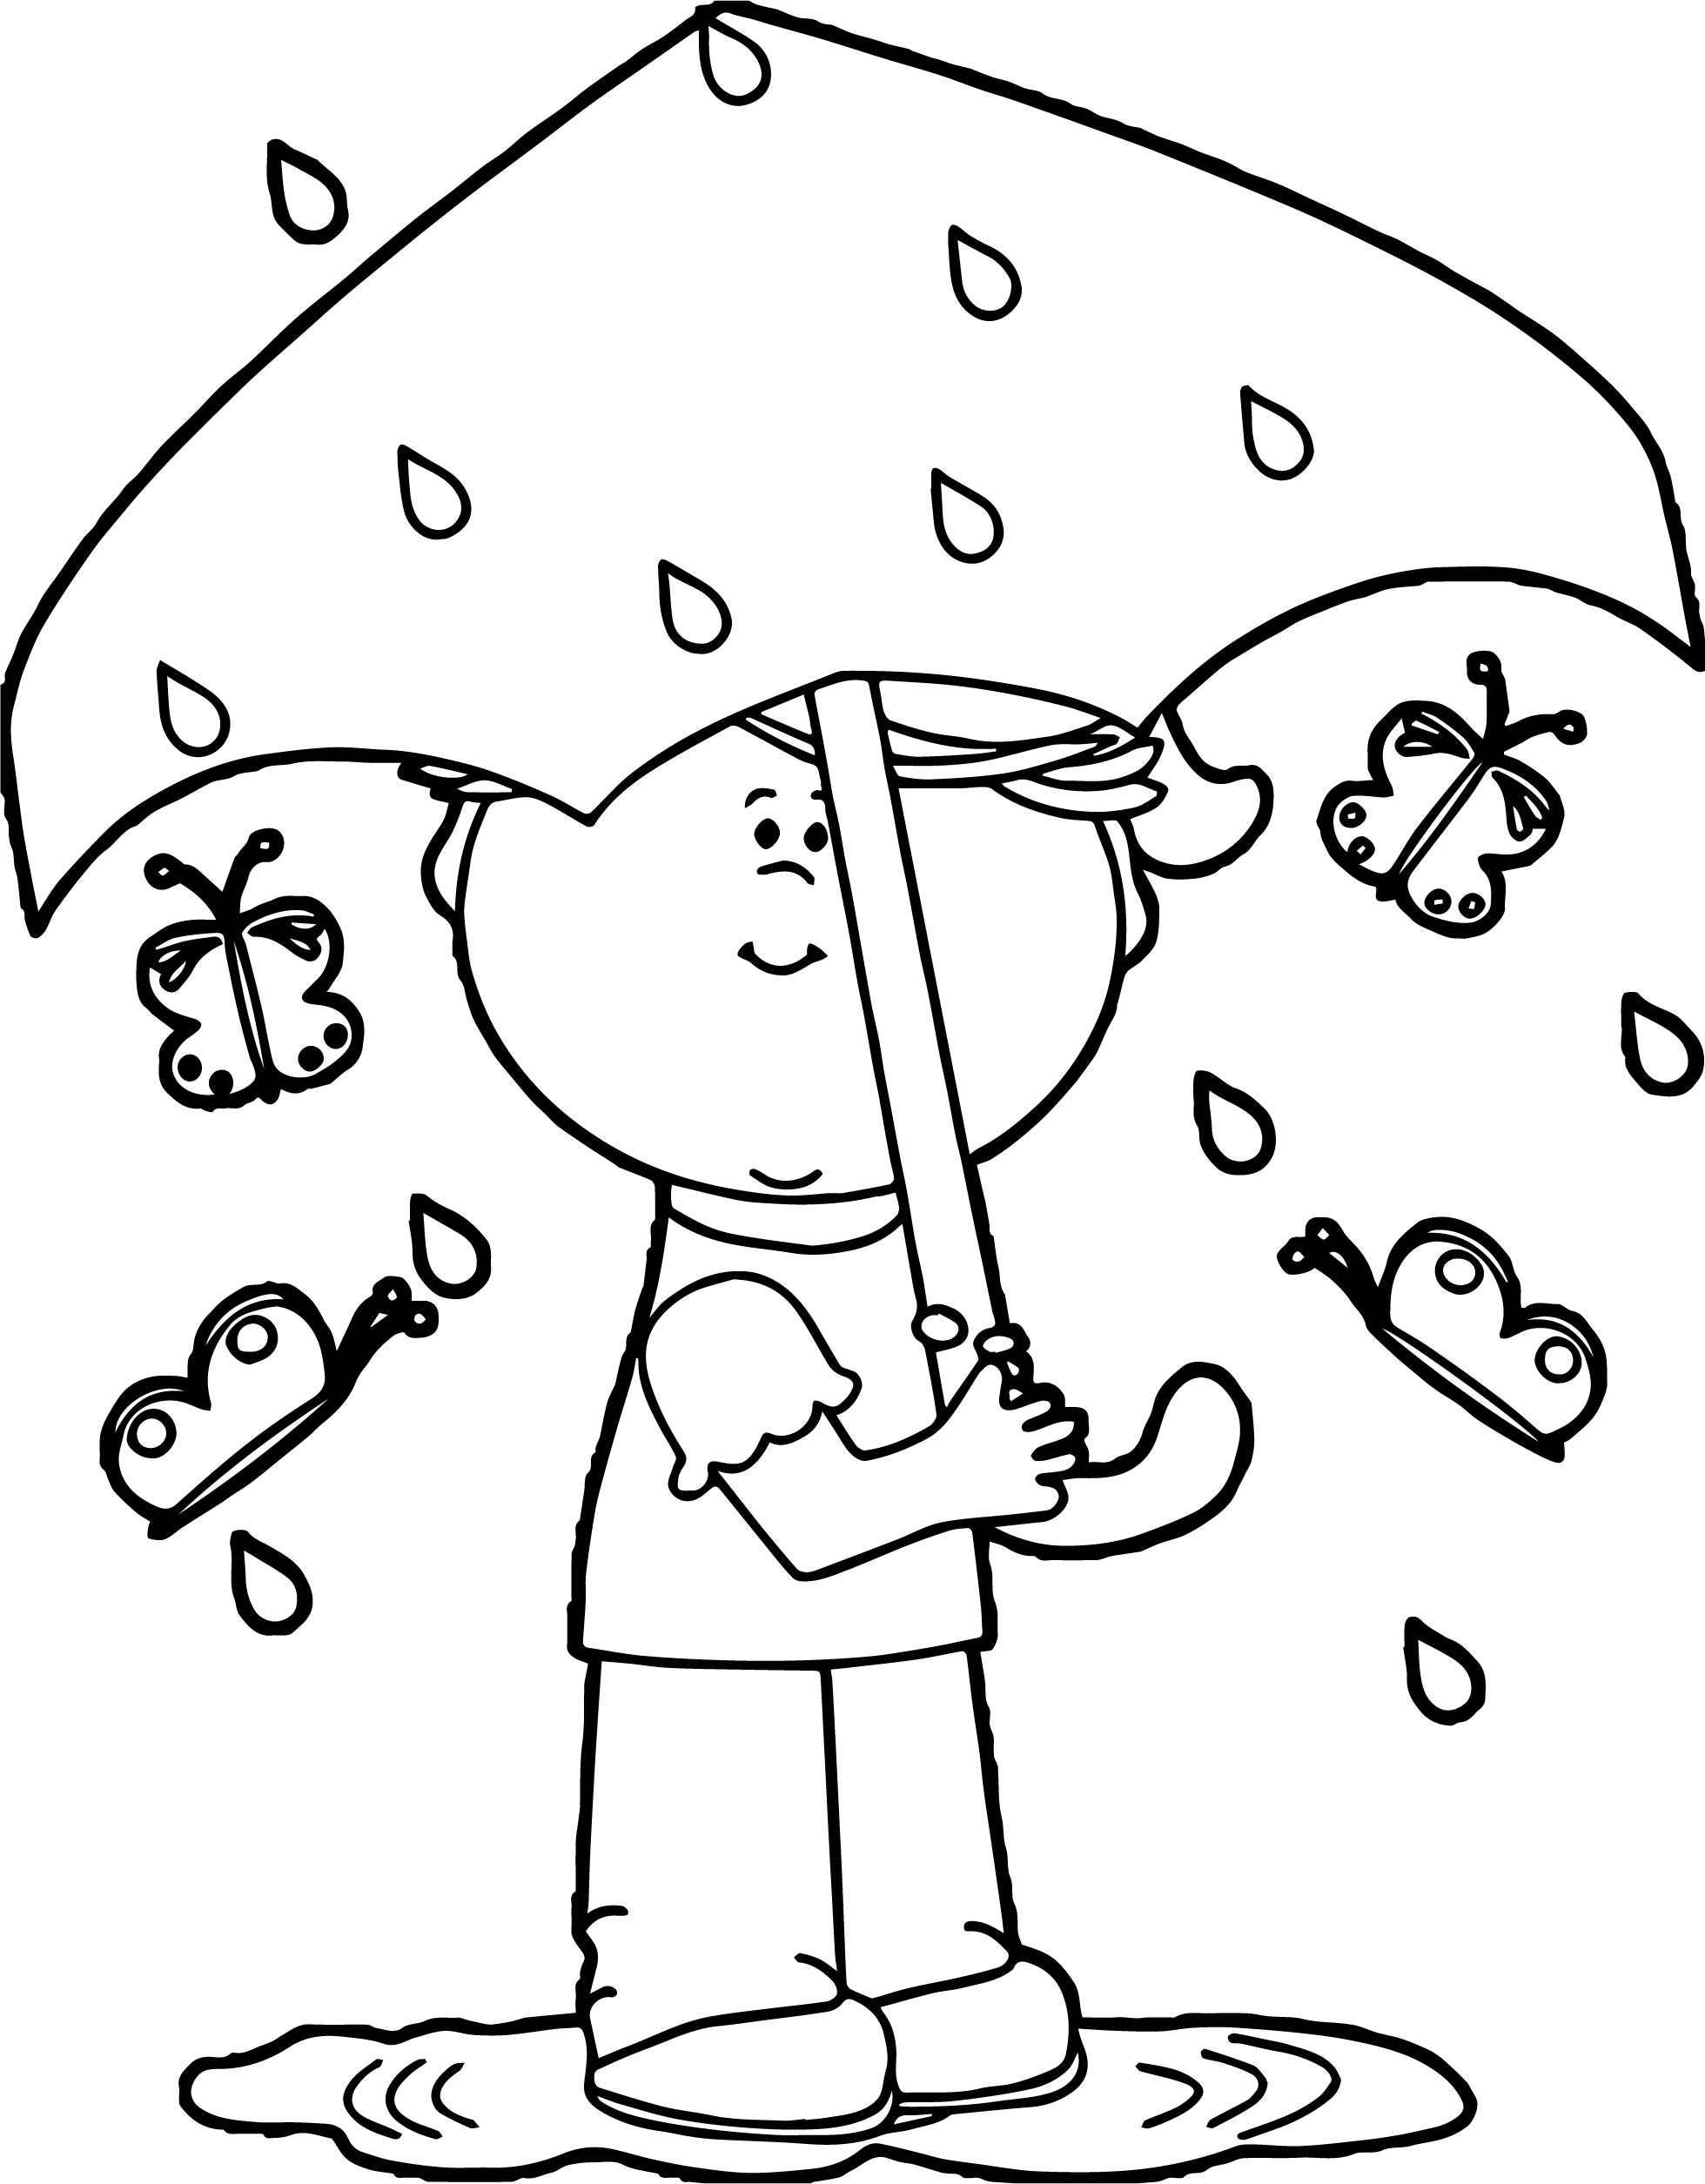 Girl In Spring Rain Coloring Page Wecoloringpage